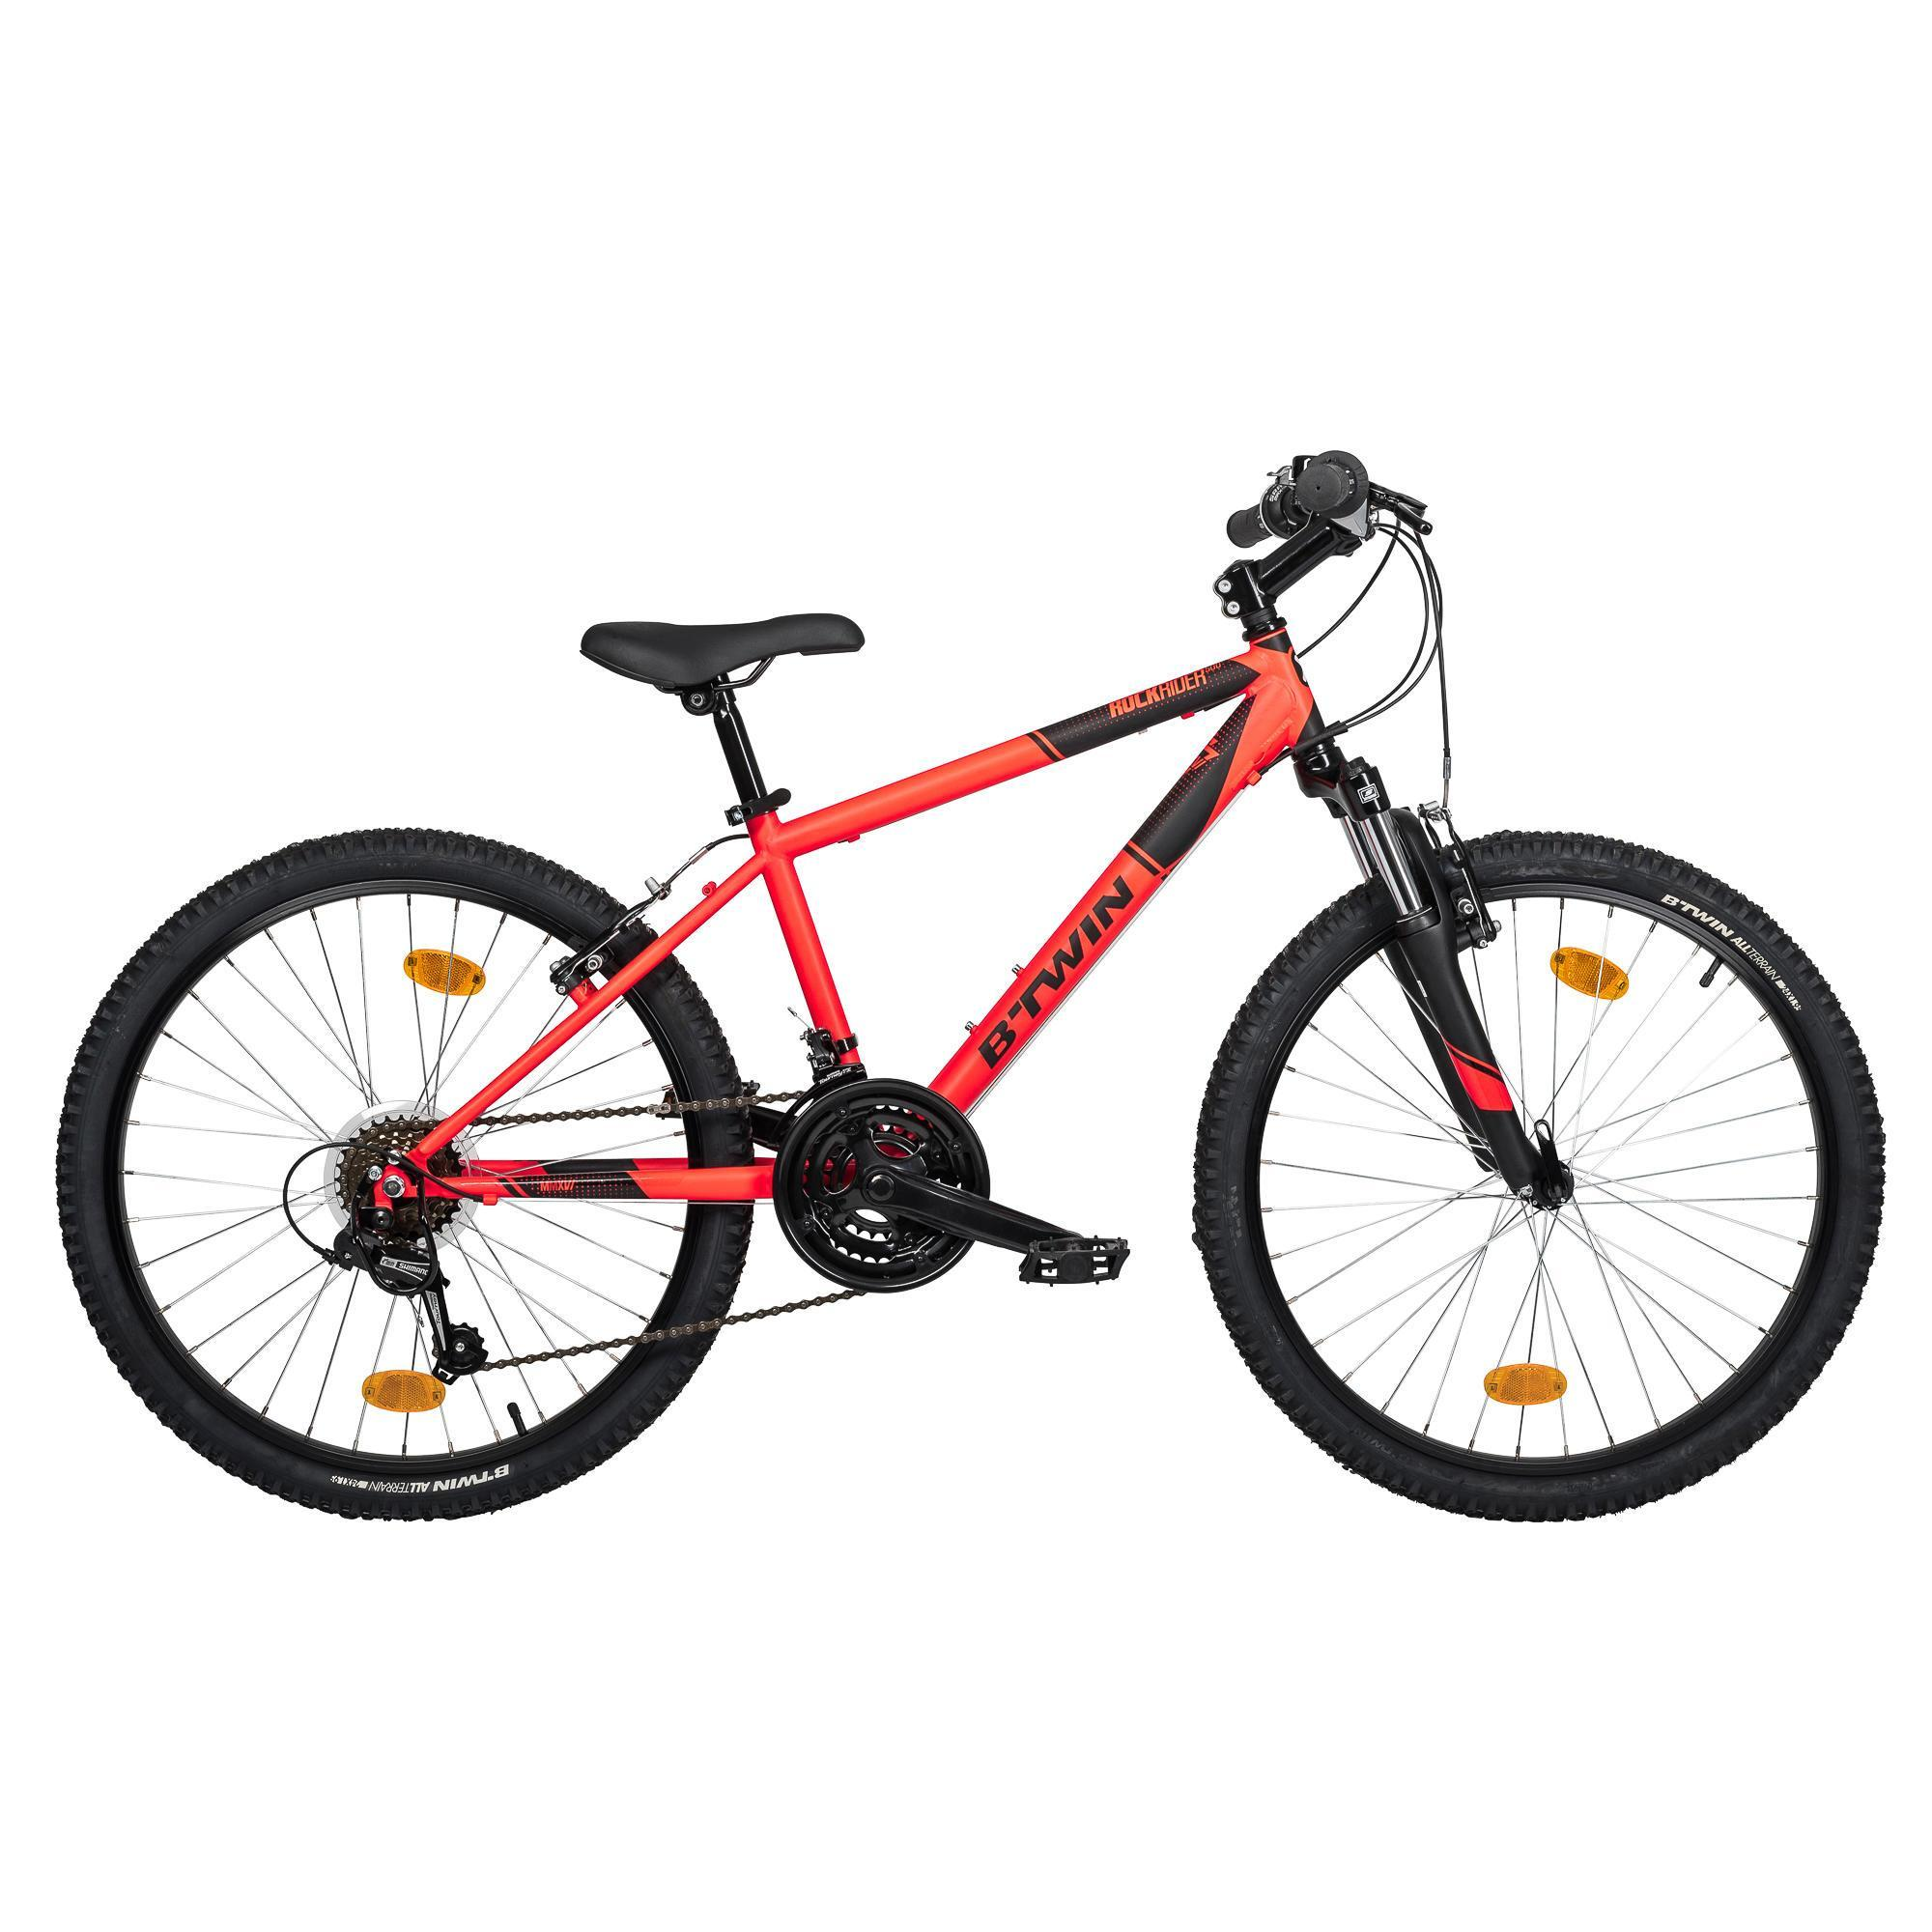 mountainbike kinder 24 zoll rockrider 500 b 39 twin decathlon. Black Bedroom Furniture Sets. Home Design Ideas